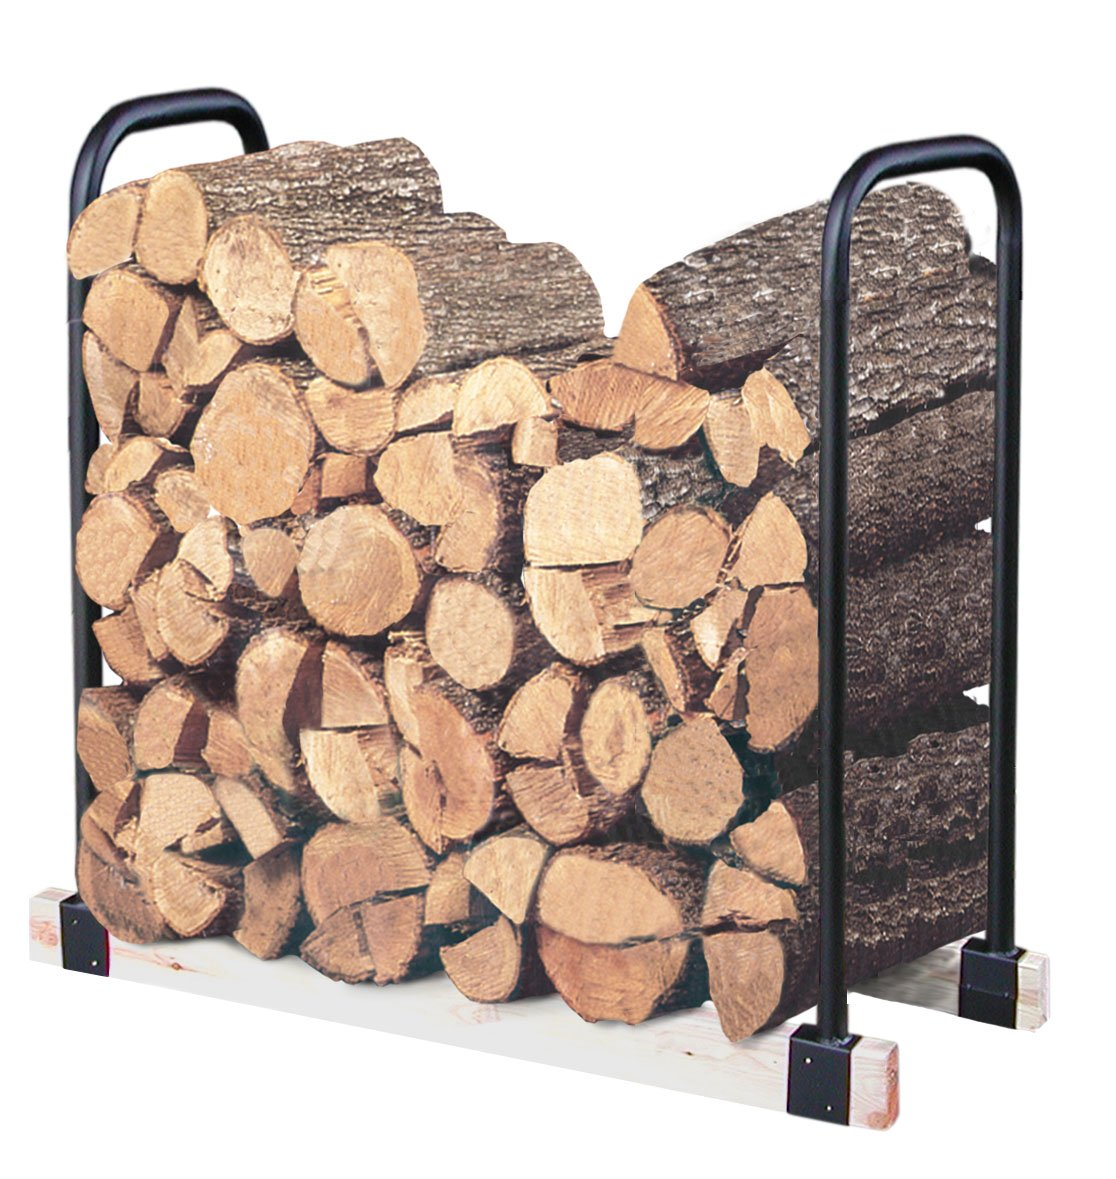 Landmann_USA_82424_Adjustable_Firewood_Rack,_Up__to_16-Feet_Wide